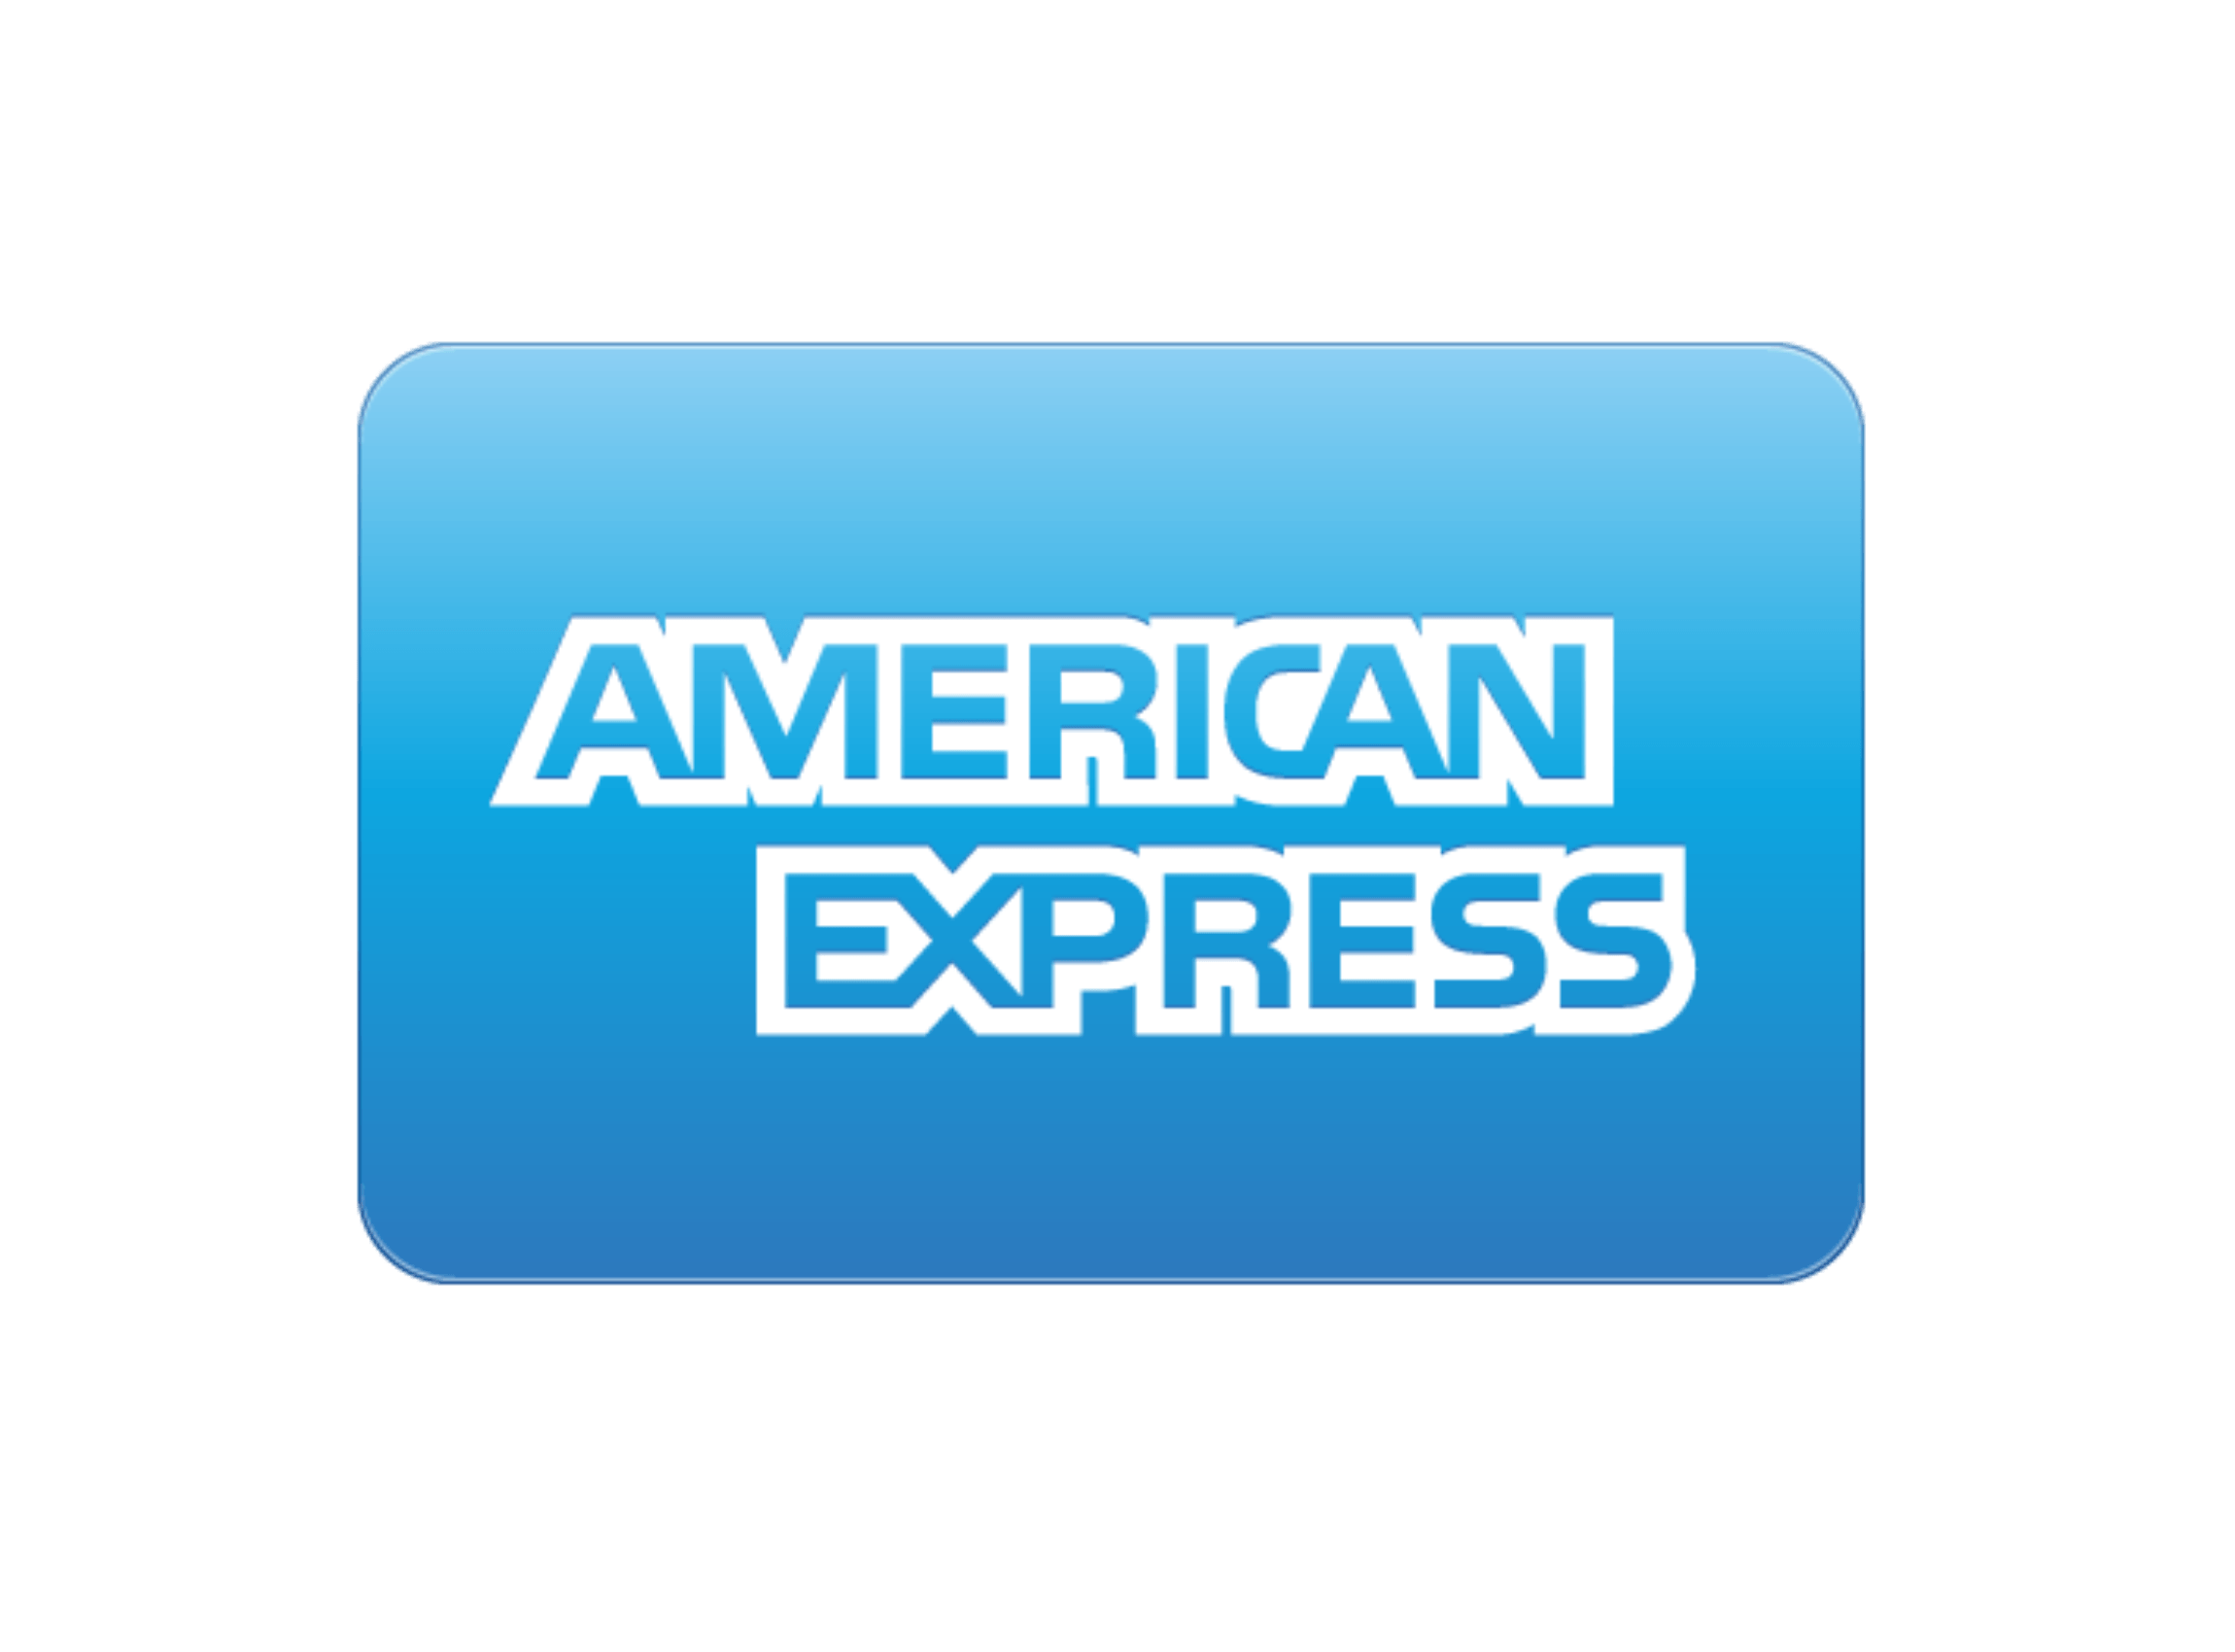 kisspng-american-express-logo-credit-card-payment-seo-for-the-finance-industry-experience-and-solu-5b62e88484b086.4246404315332087085435